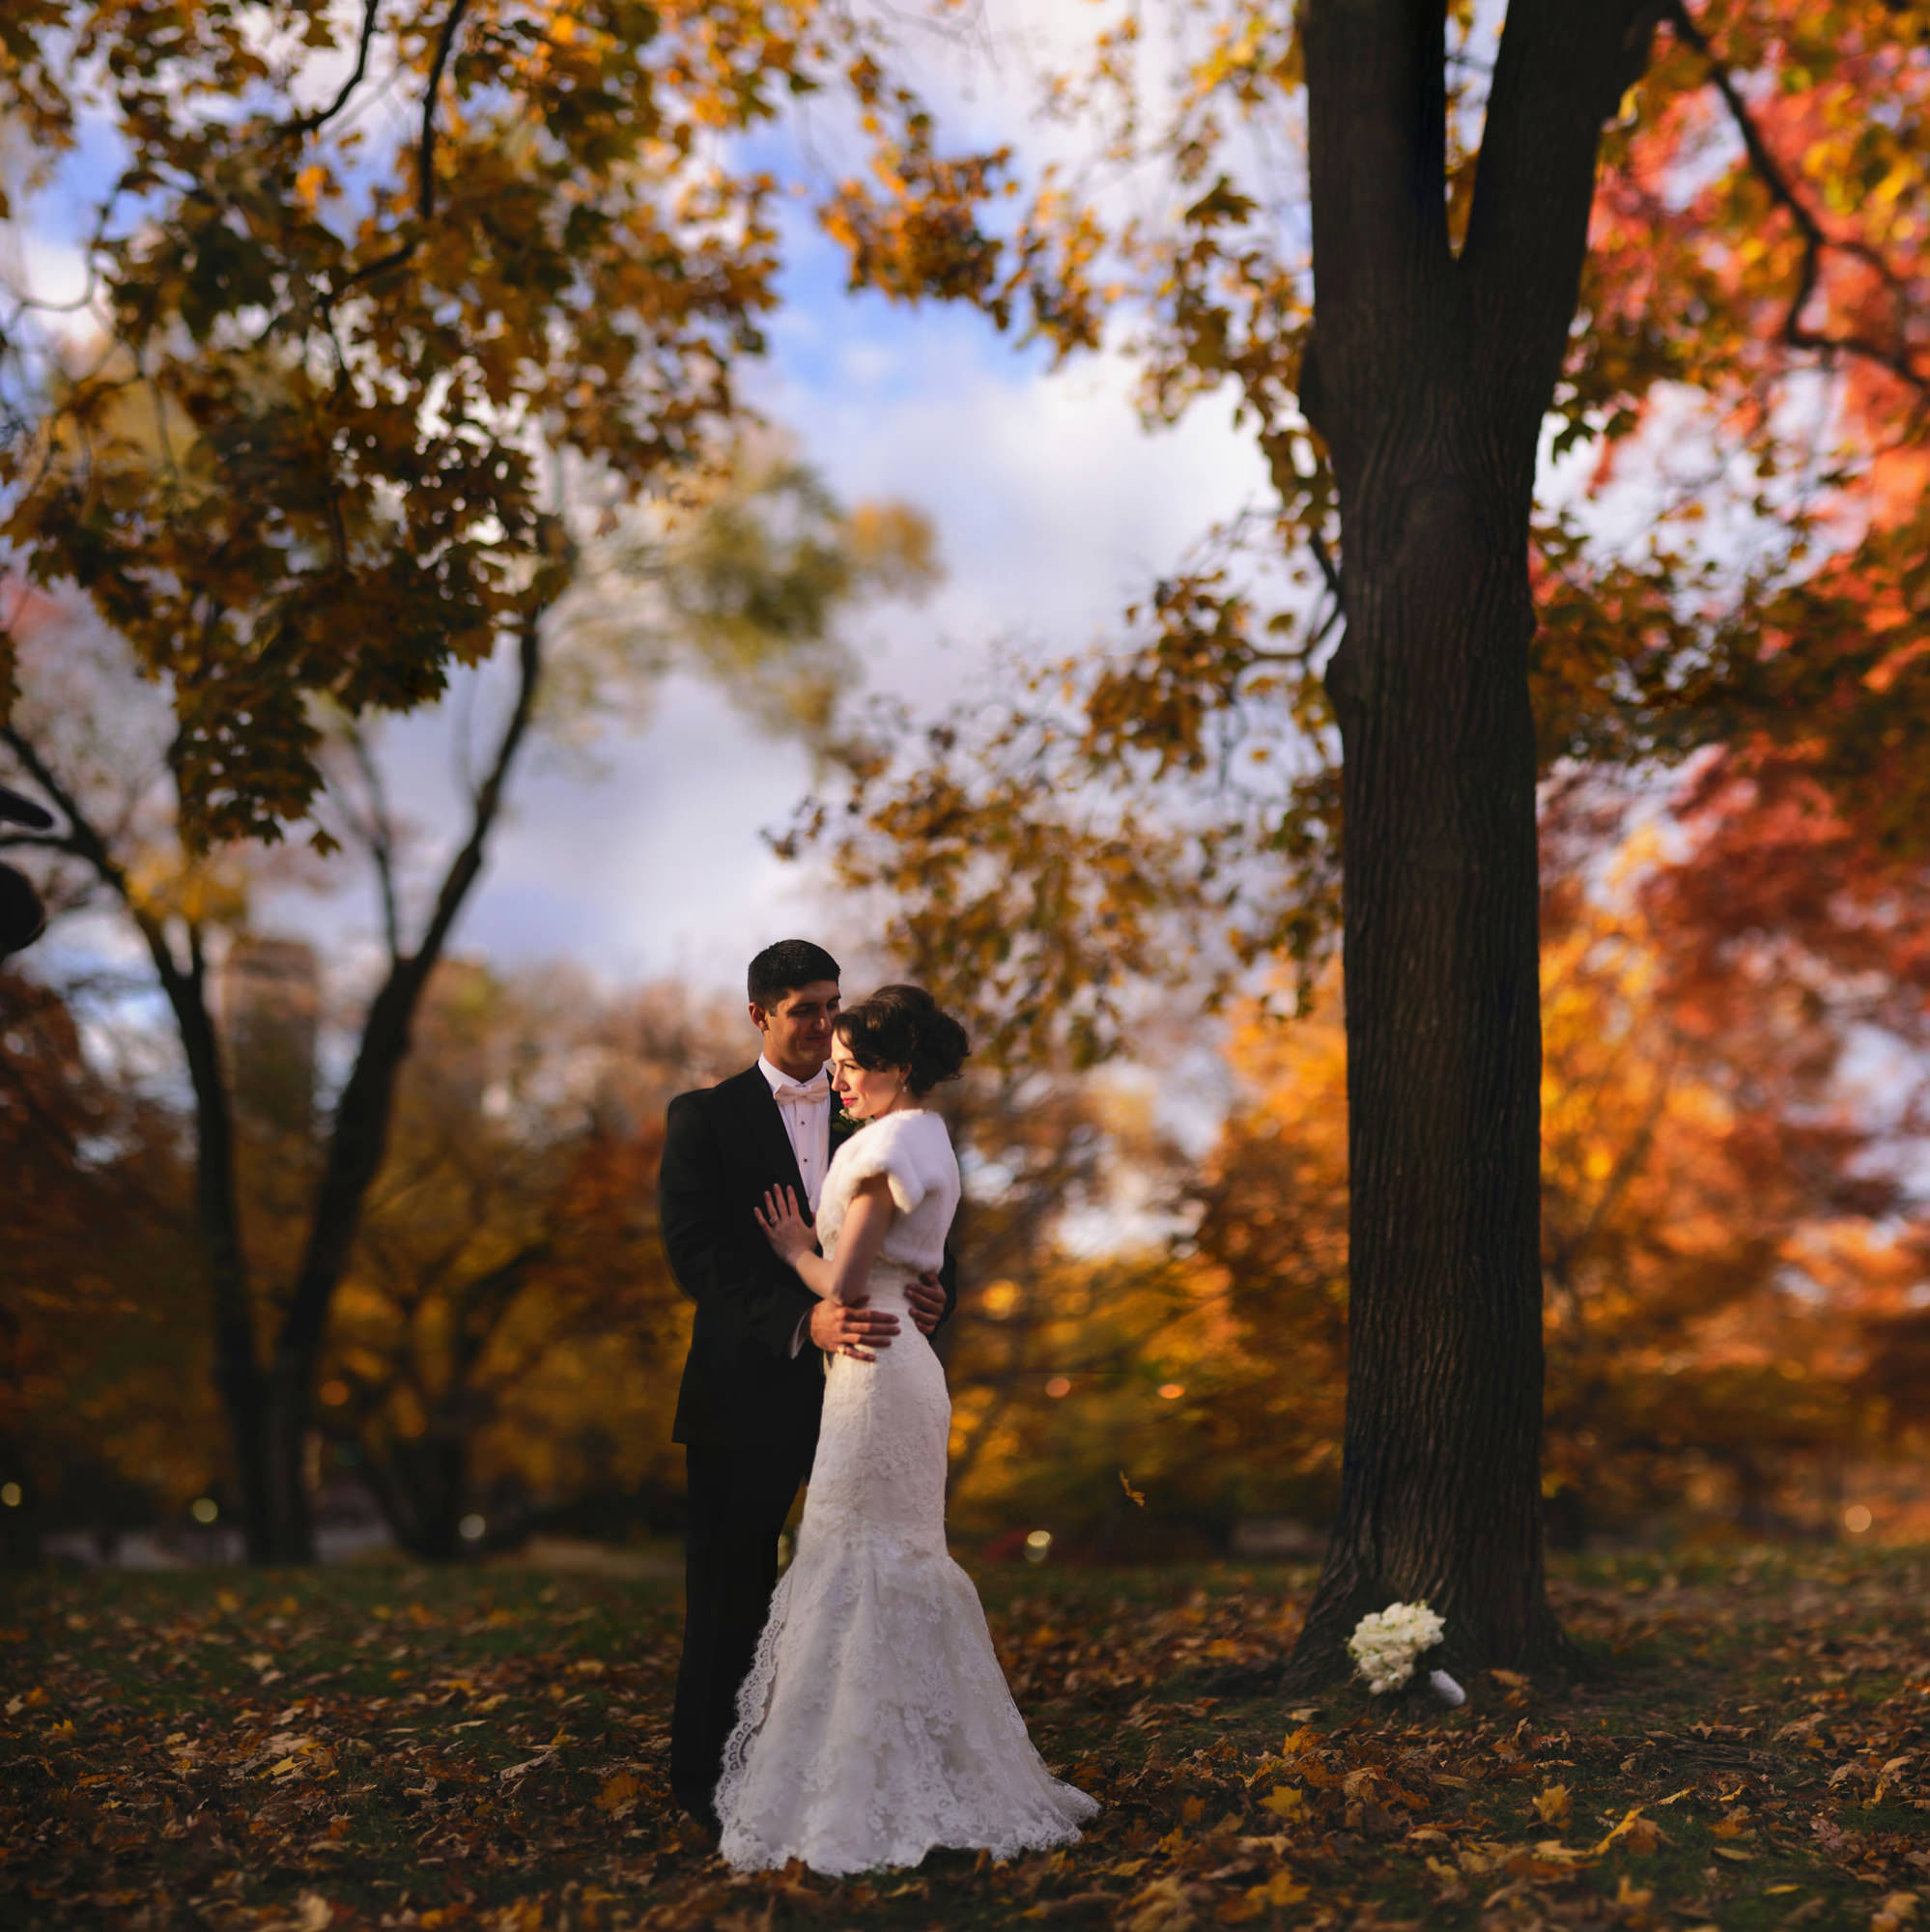 Fall portrait of bride in faux fur stole and groom in tux, photo by The Brenizers